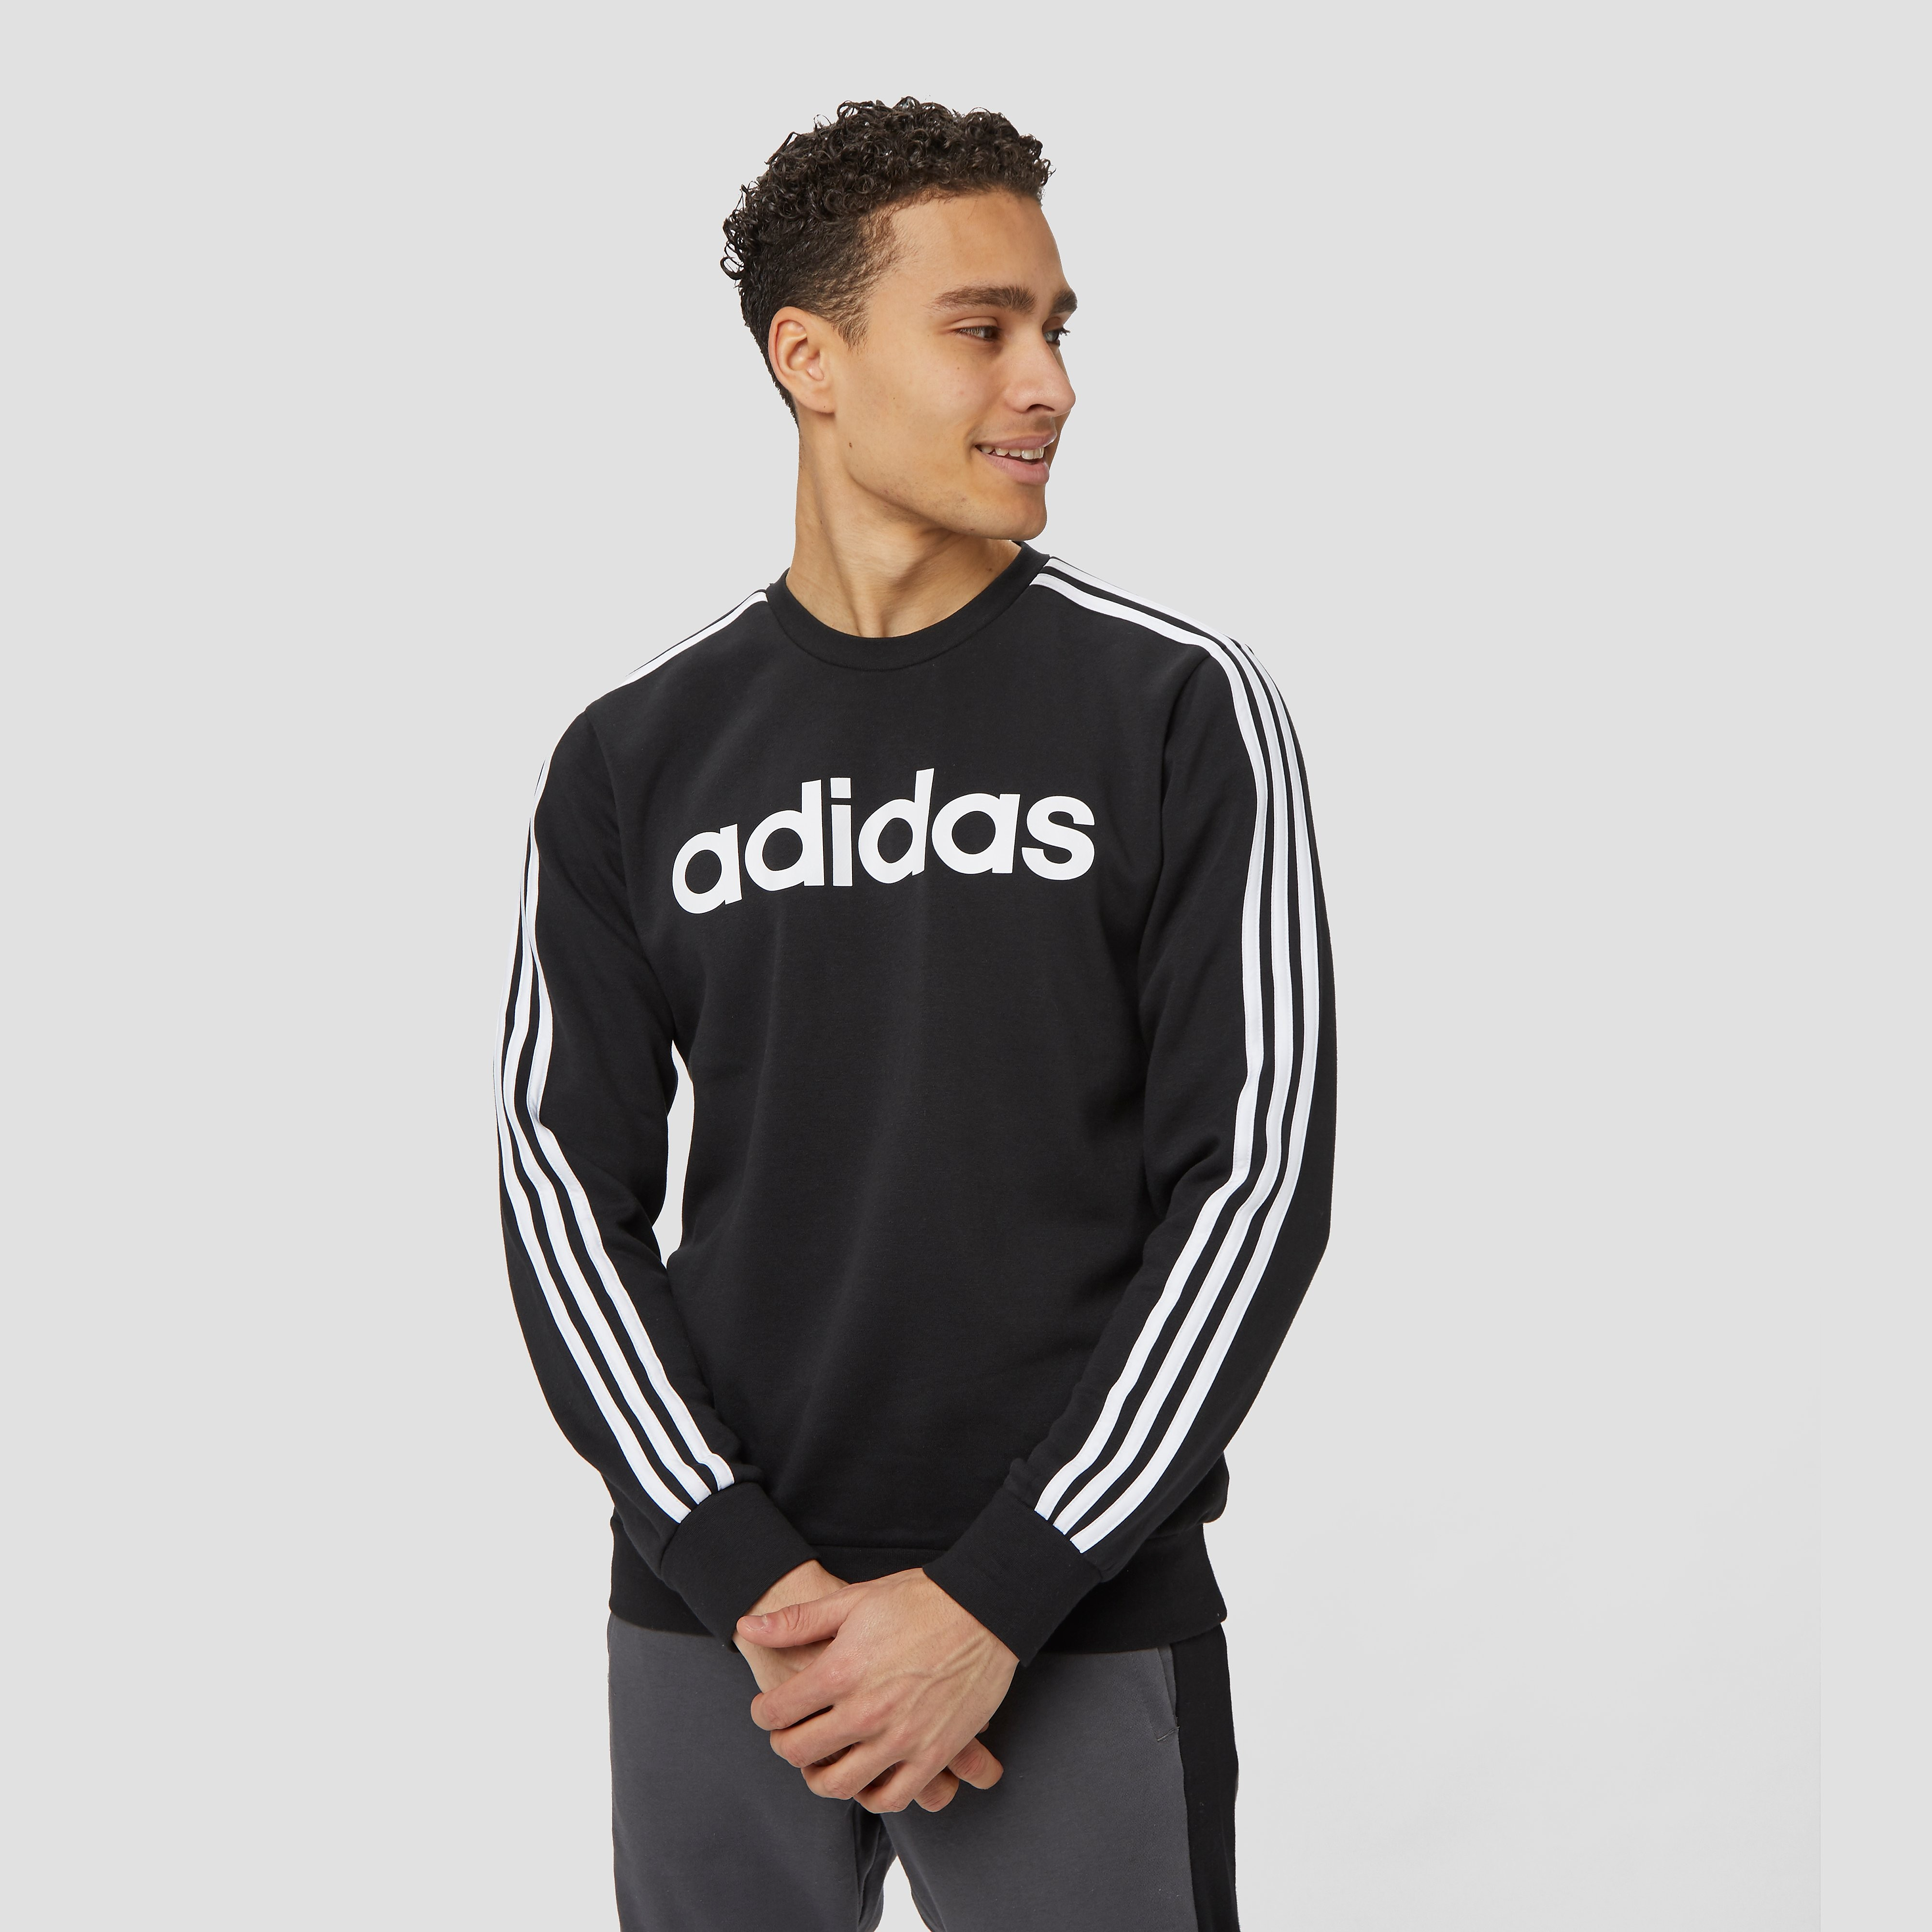 adidas Essentials 3-stripes crew sweater zwart/wit heren Heren